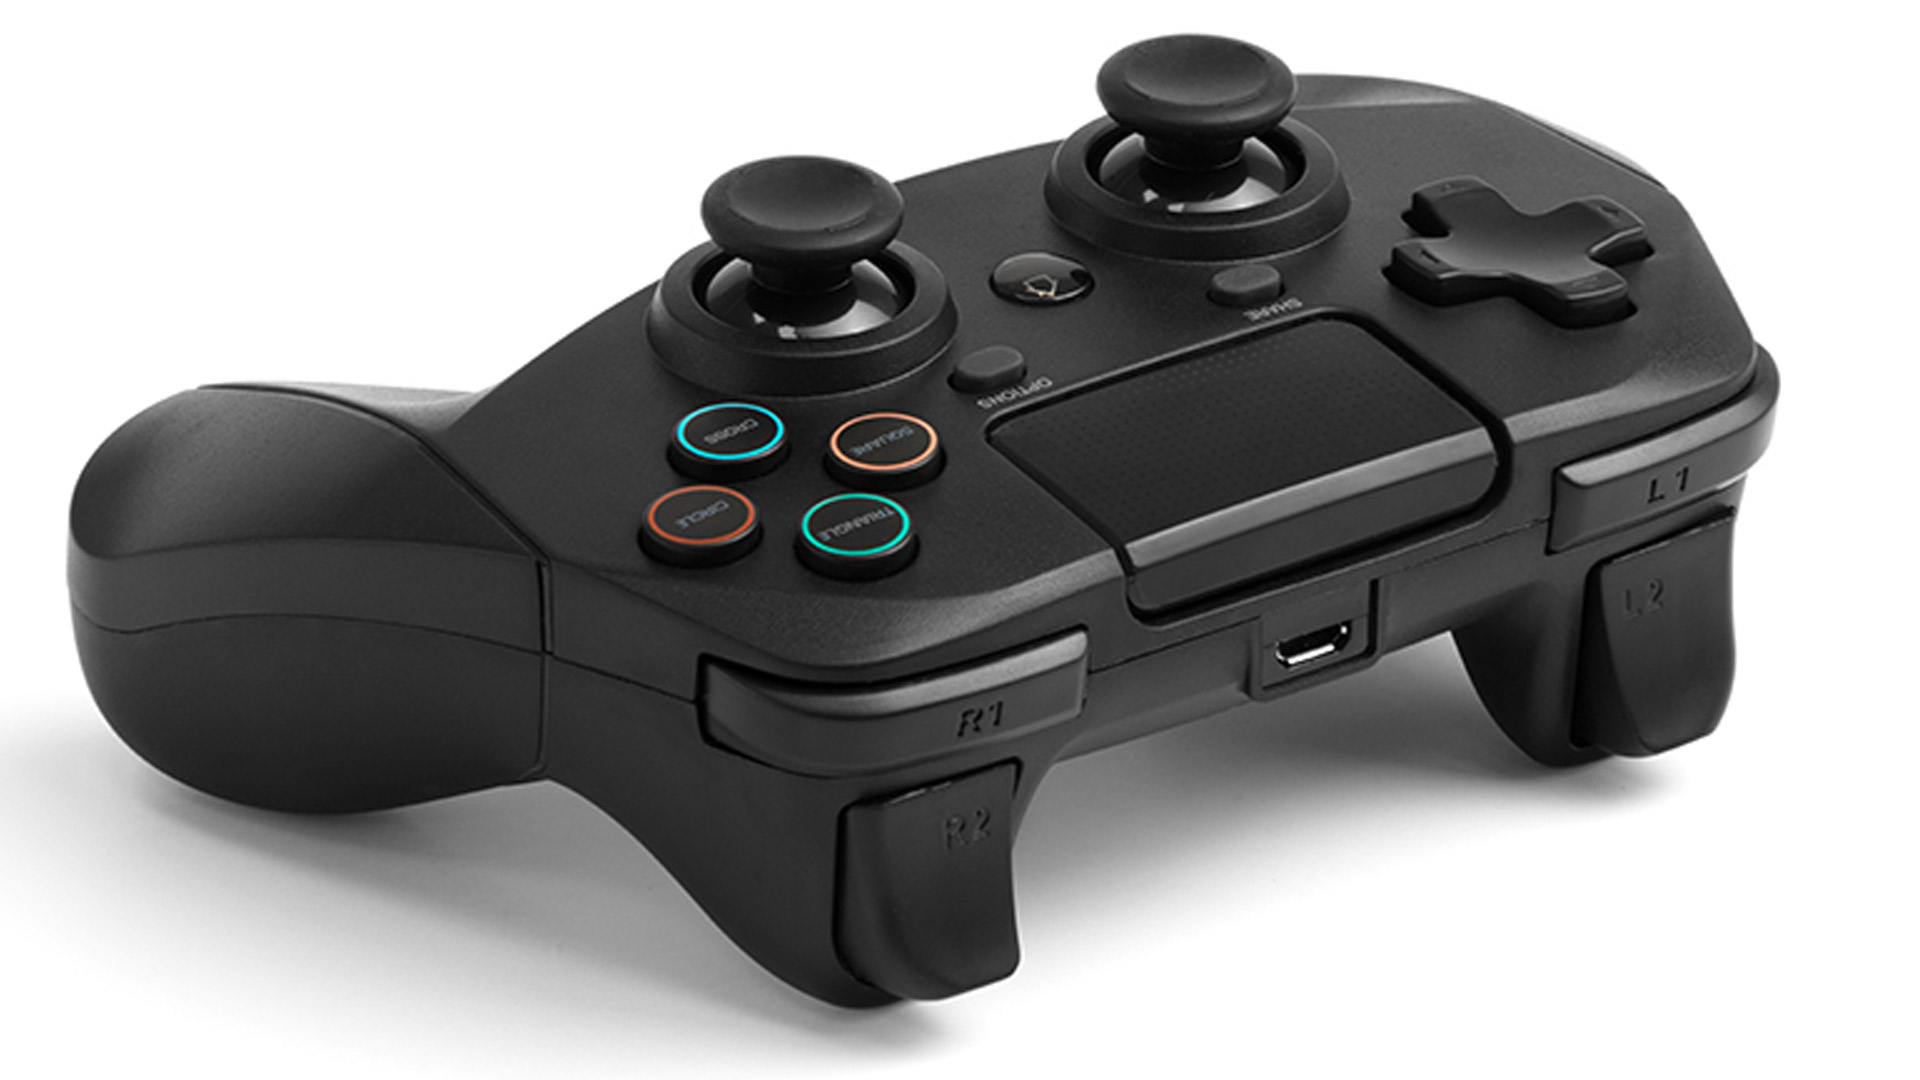 Game:Pad 4S Wireless Controller for PlayStation 4 Gaming